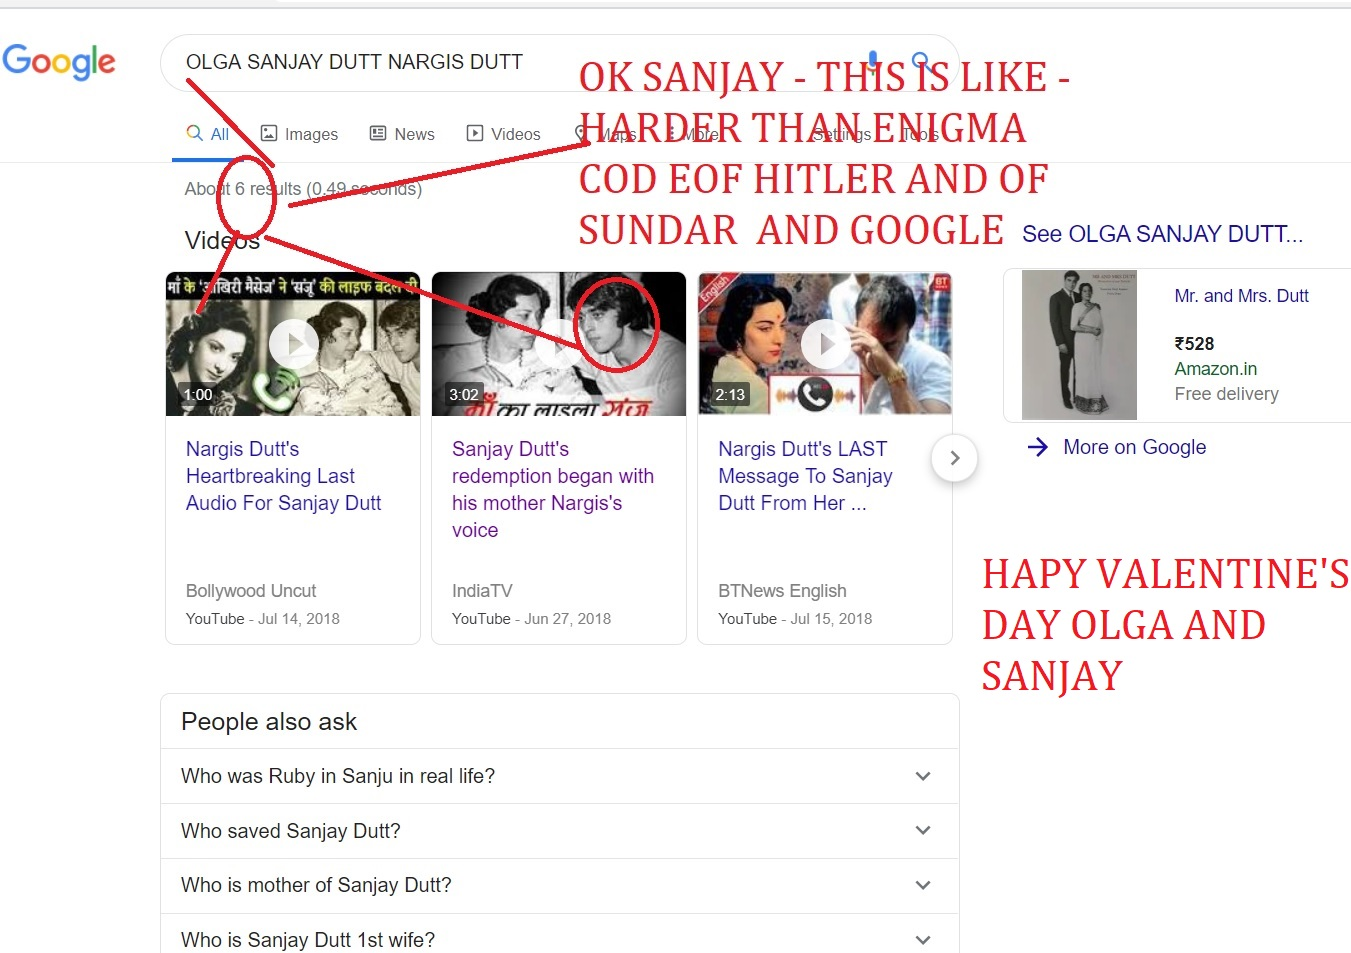 OK SANJAY - THIS IS LIKE - HARDER THAN ENIGMA COD EOF HITLER AND OF SUNDAR AND GOOGLE HAPPY VALENTINE DAY